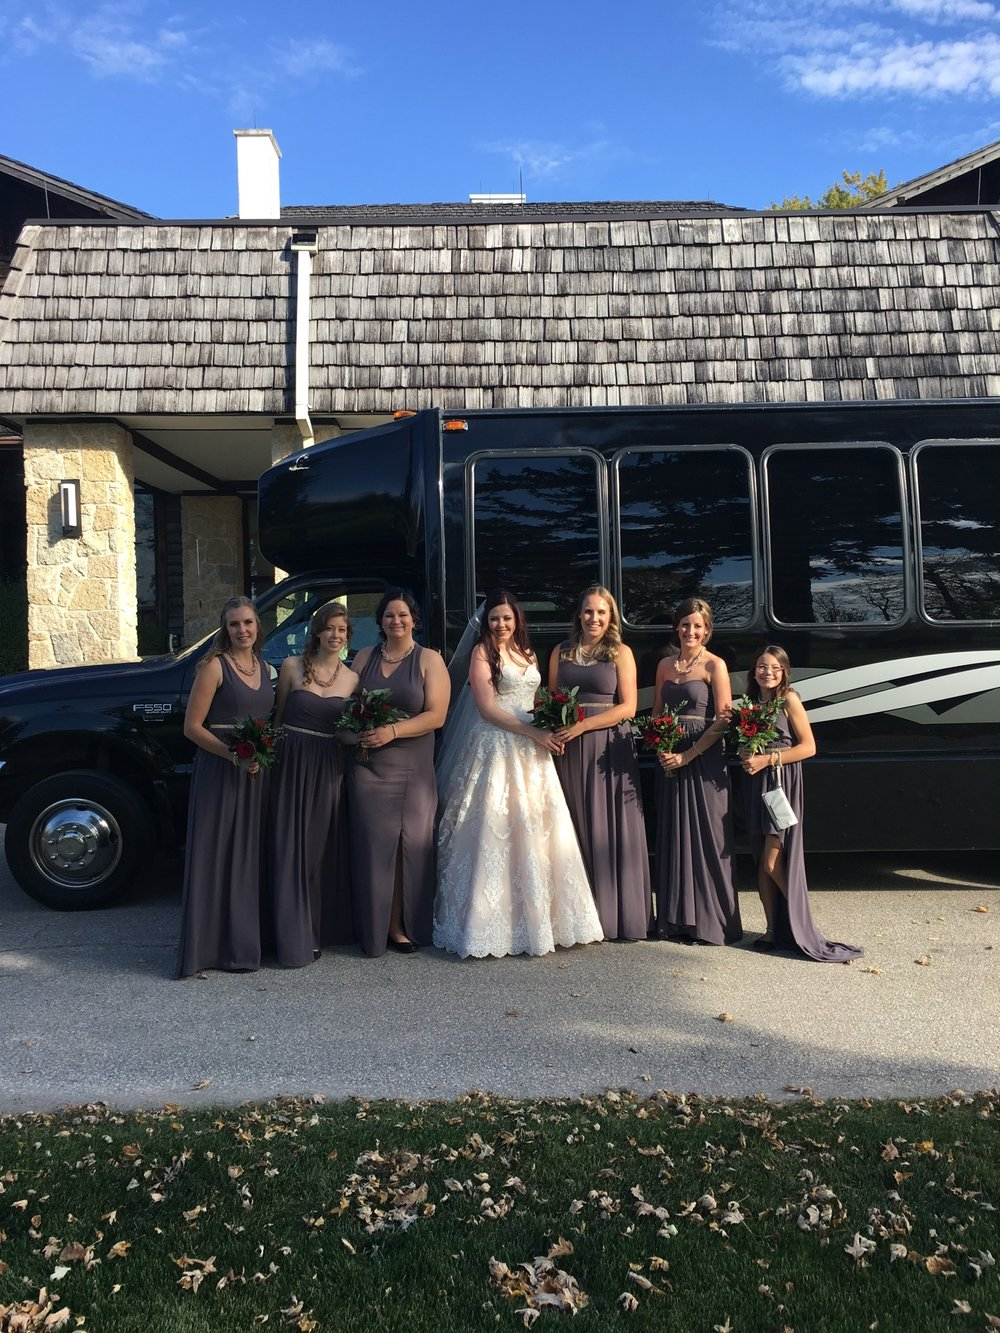 Alana and her bridesmaids